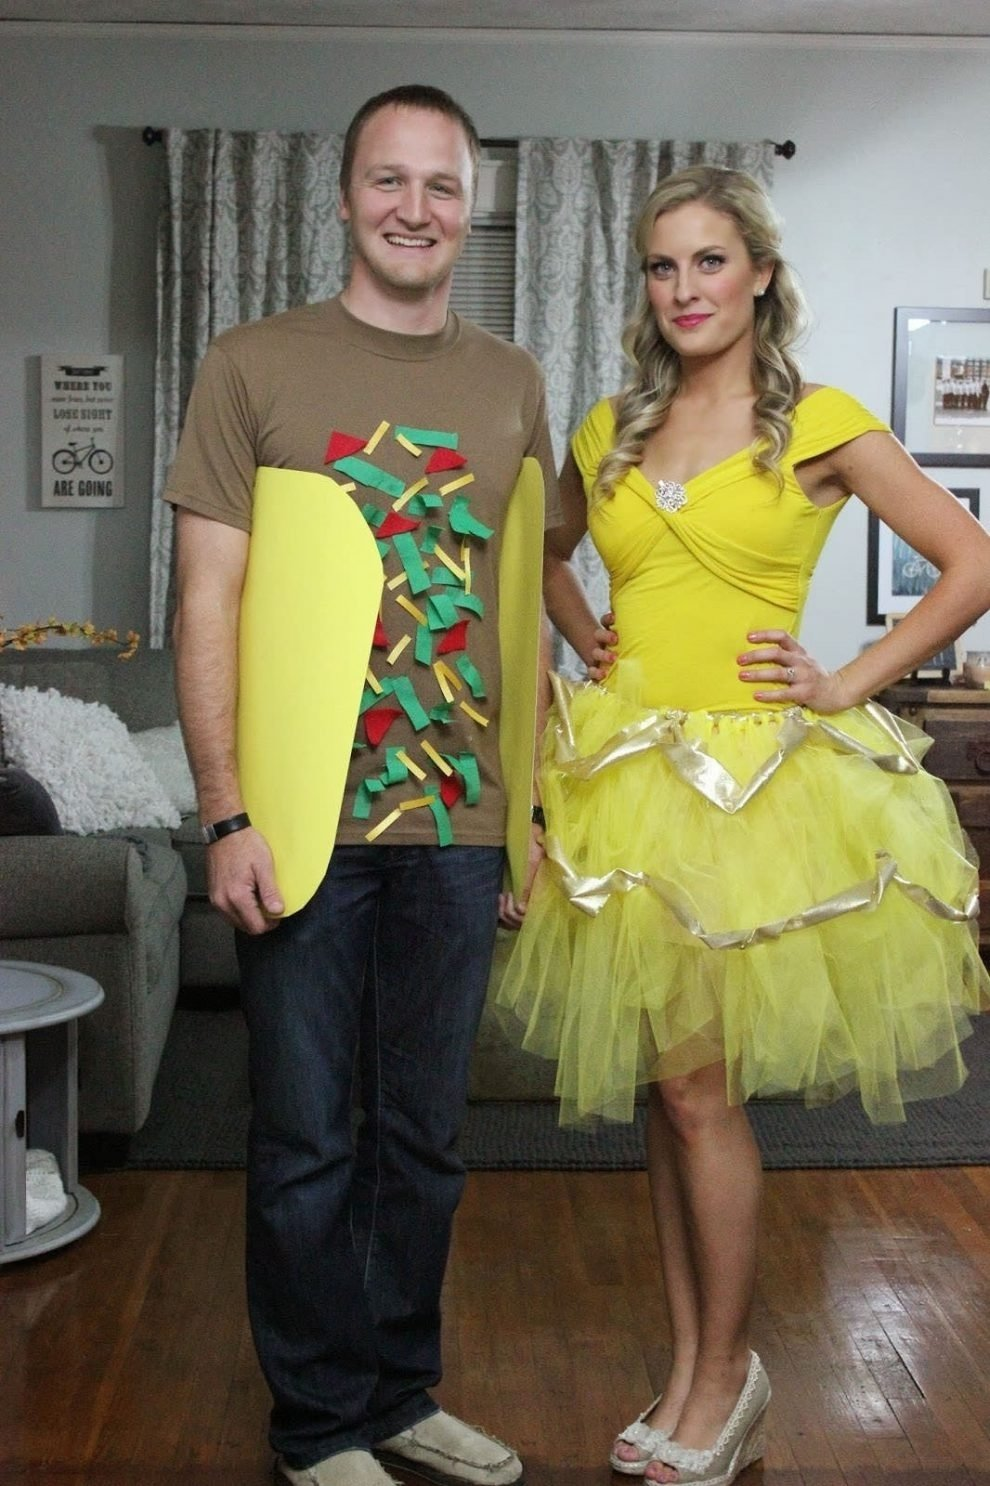 10 Great Quick Costume Ideas For Women cheap and easy halloween costumes for couples ideas 1 2021